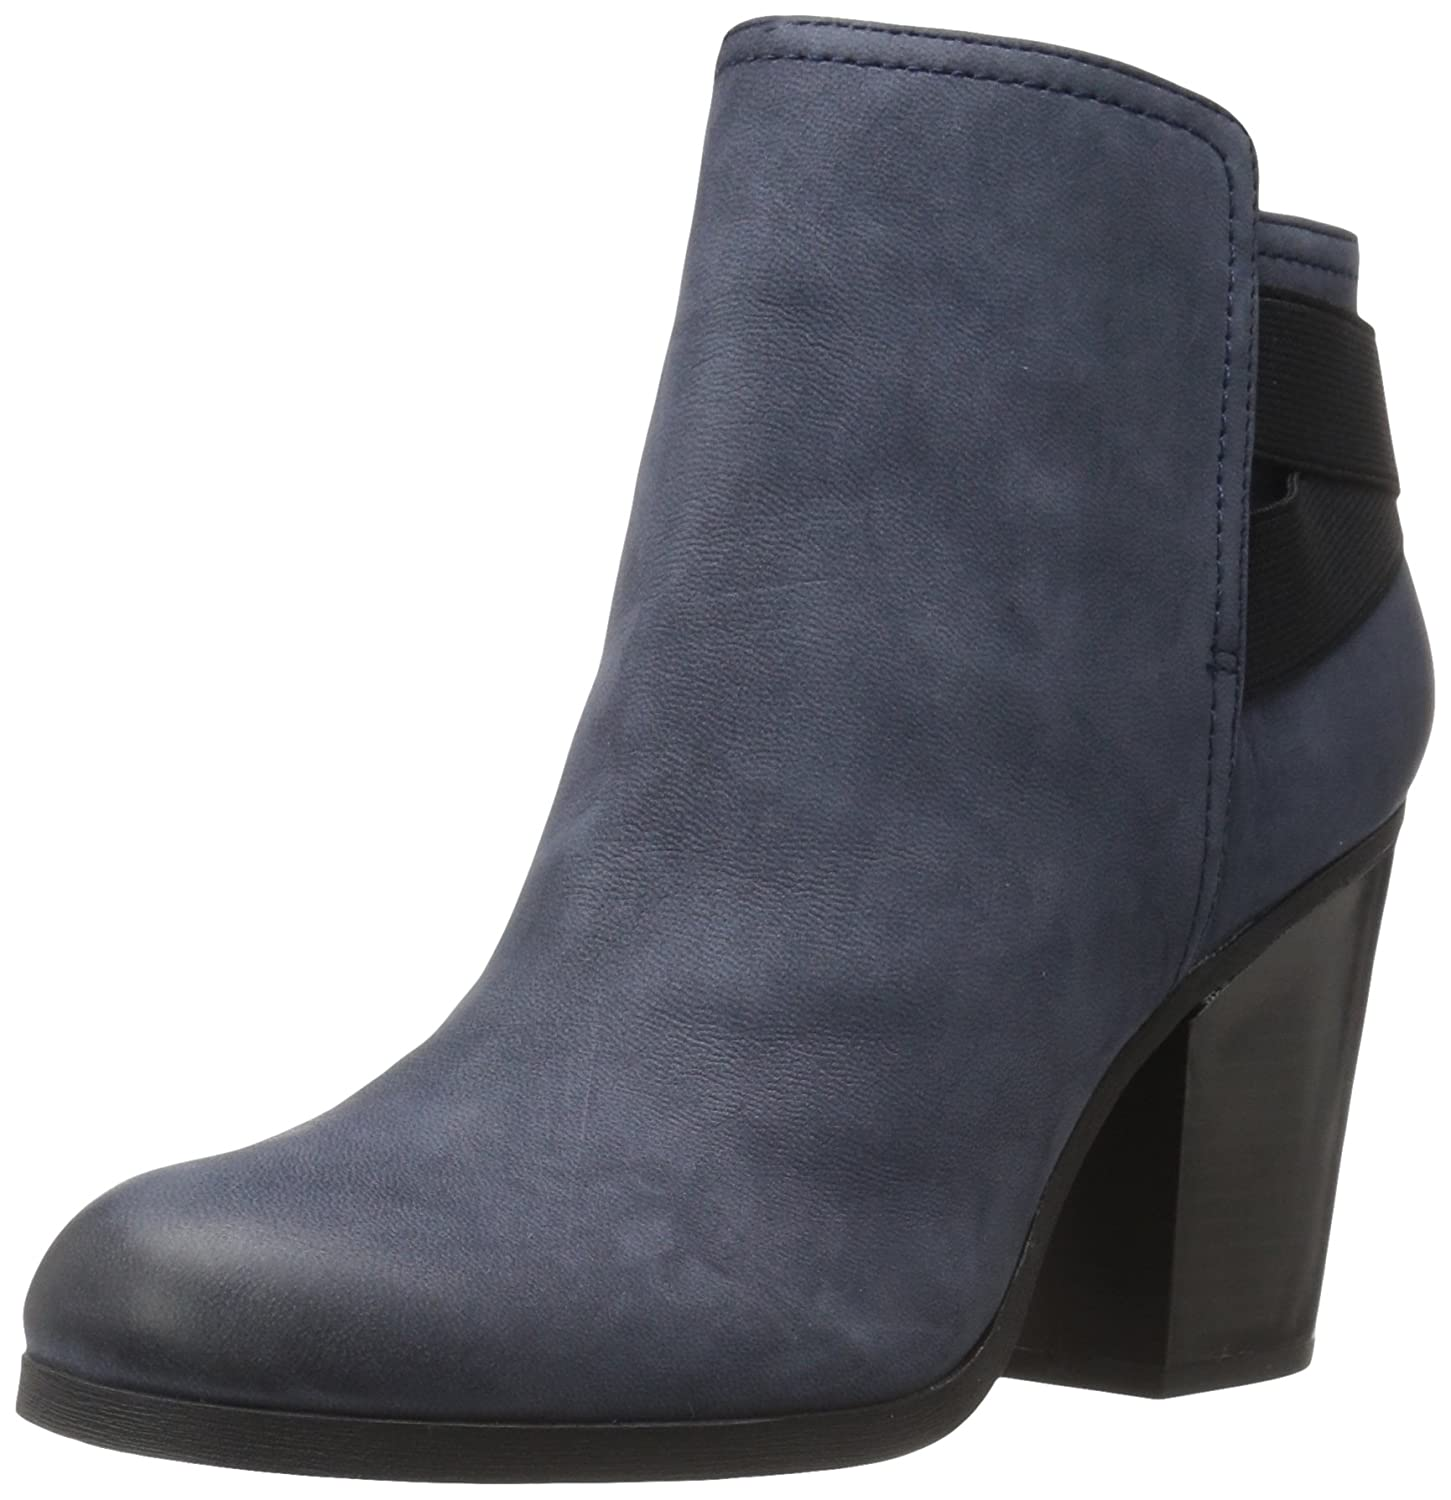 Kenneth Cole REACTION Women's Might Make It Ankle Bootie B01CPTBIGS 9.5 B(M) US|Navy